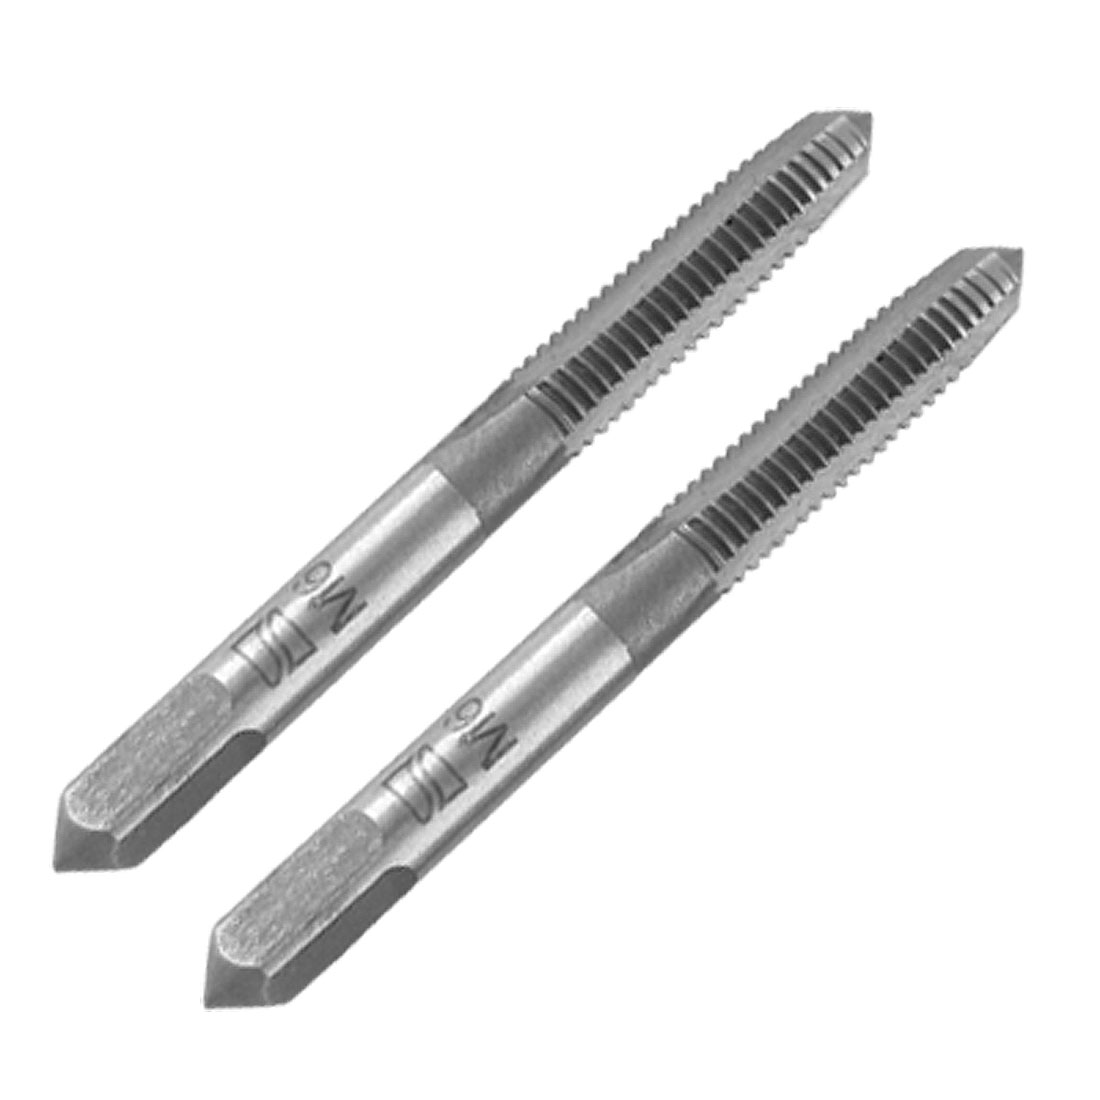 2pcs 55mm Dia. Straight Screw Flute Machine Taper Tap Drill Bit Tool